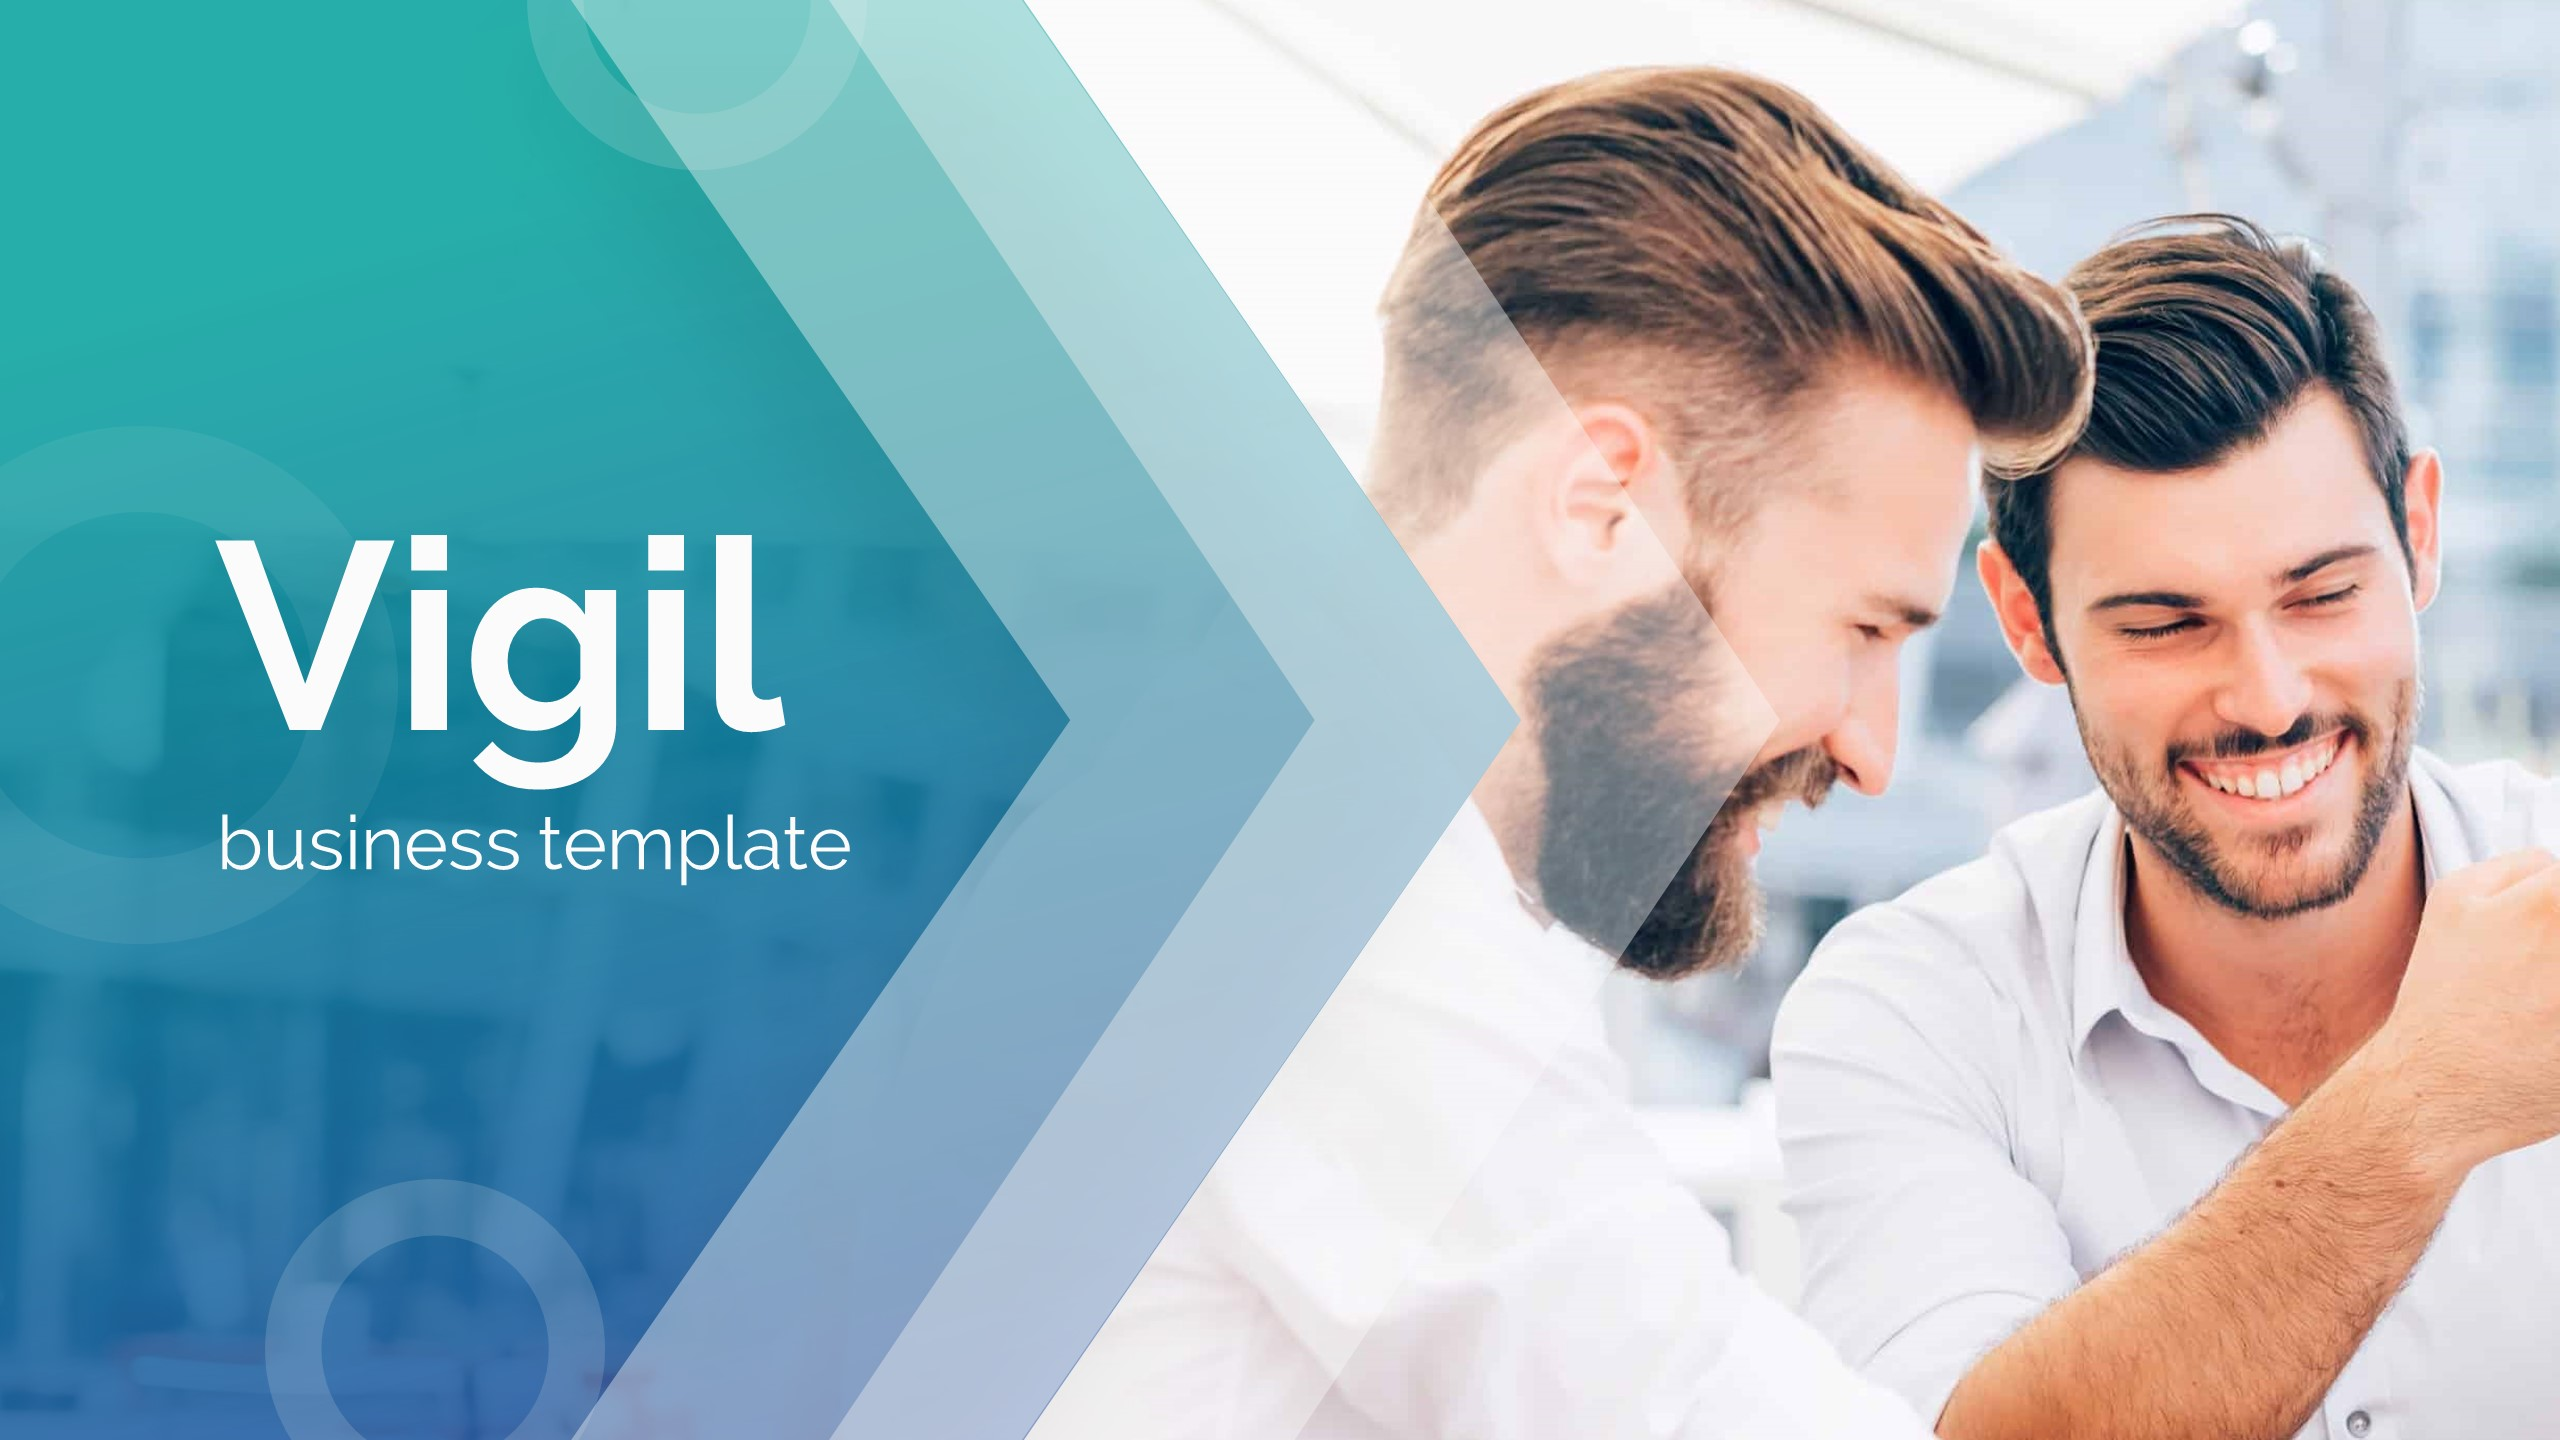 If You're In The Market For A Vivid Powerpoint Presentation Tool, The Vigil  Template By Pain Design Might Simply Be The Theme You're After.